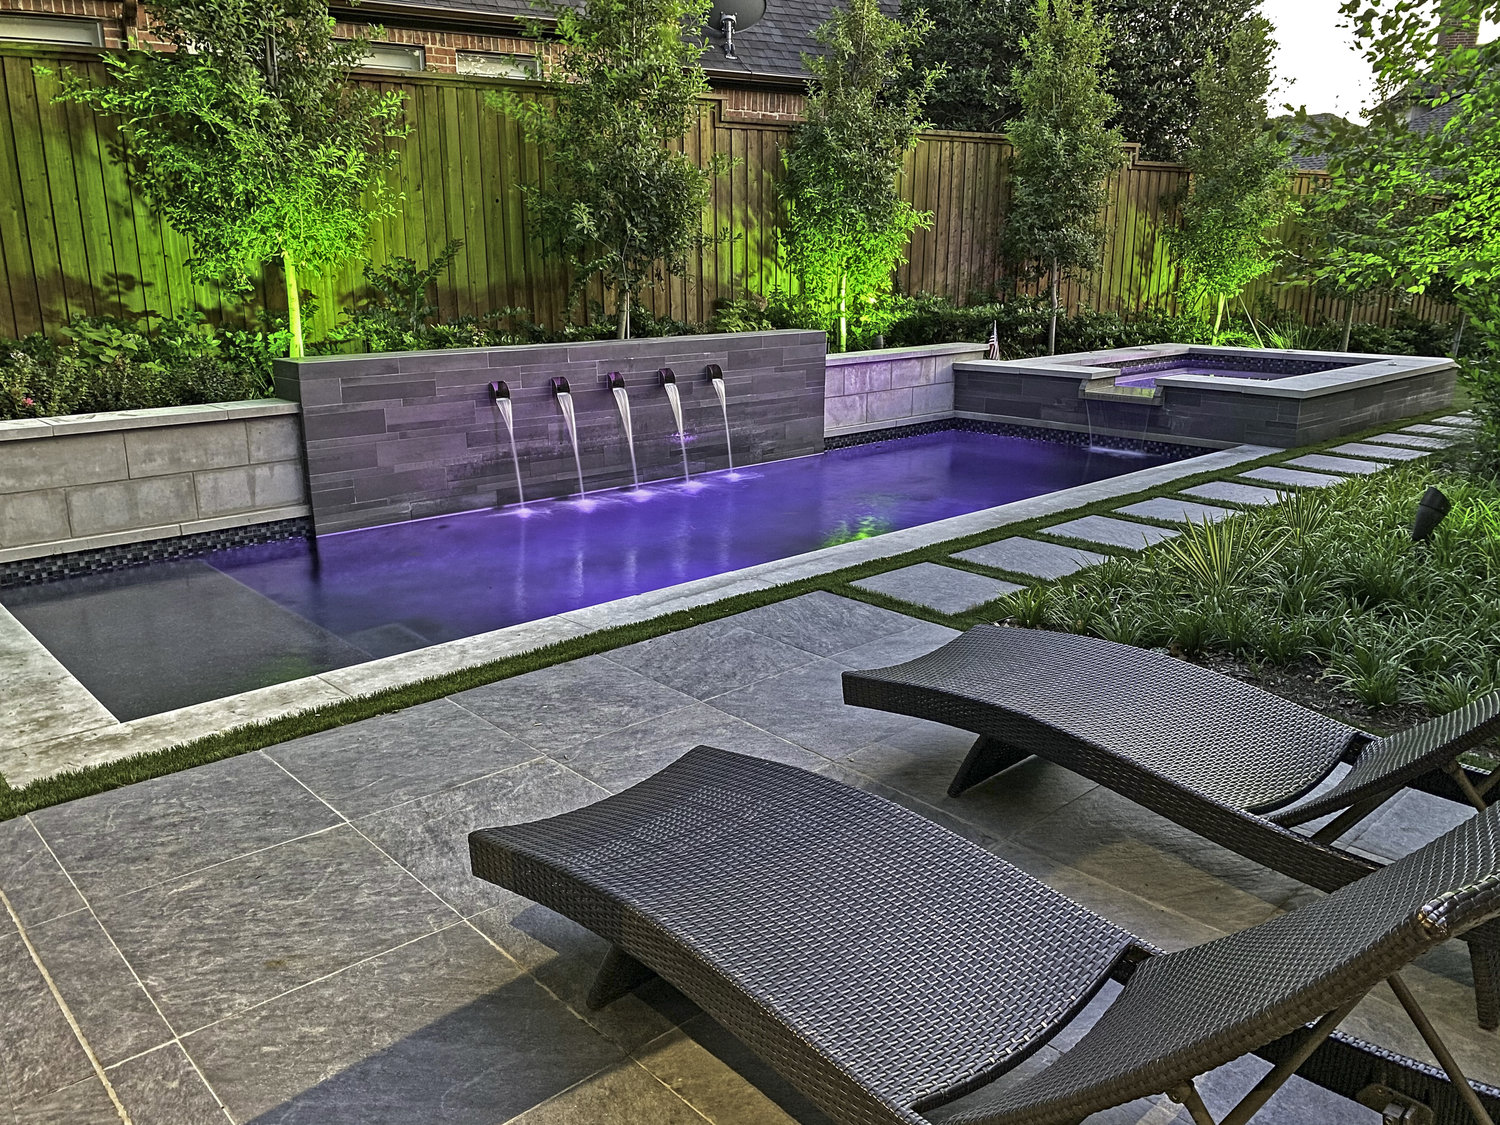 Dallas Landscape Architect | DDLA Design on terrace lighting, herbaceous border designs, courtyard designs, terrace farming, terrace steps, terrace ideas for small spaces, terrace house design, best energy efficient home designs, terrace gardening, terrace landscape, wooden house designs, gazebo designs, patio designs, loggia designs, outdoor entertainment ideas and designs, terrace stone, pergola designs, terrace design in the philippines, brick wall planter box designs, product landscape designs,